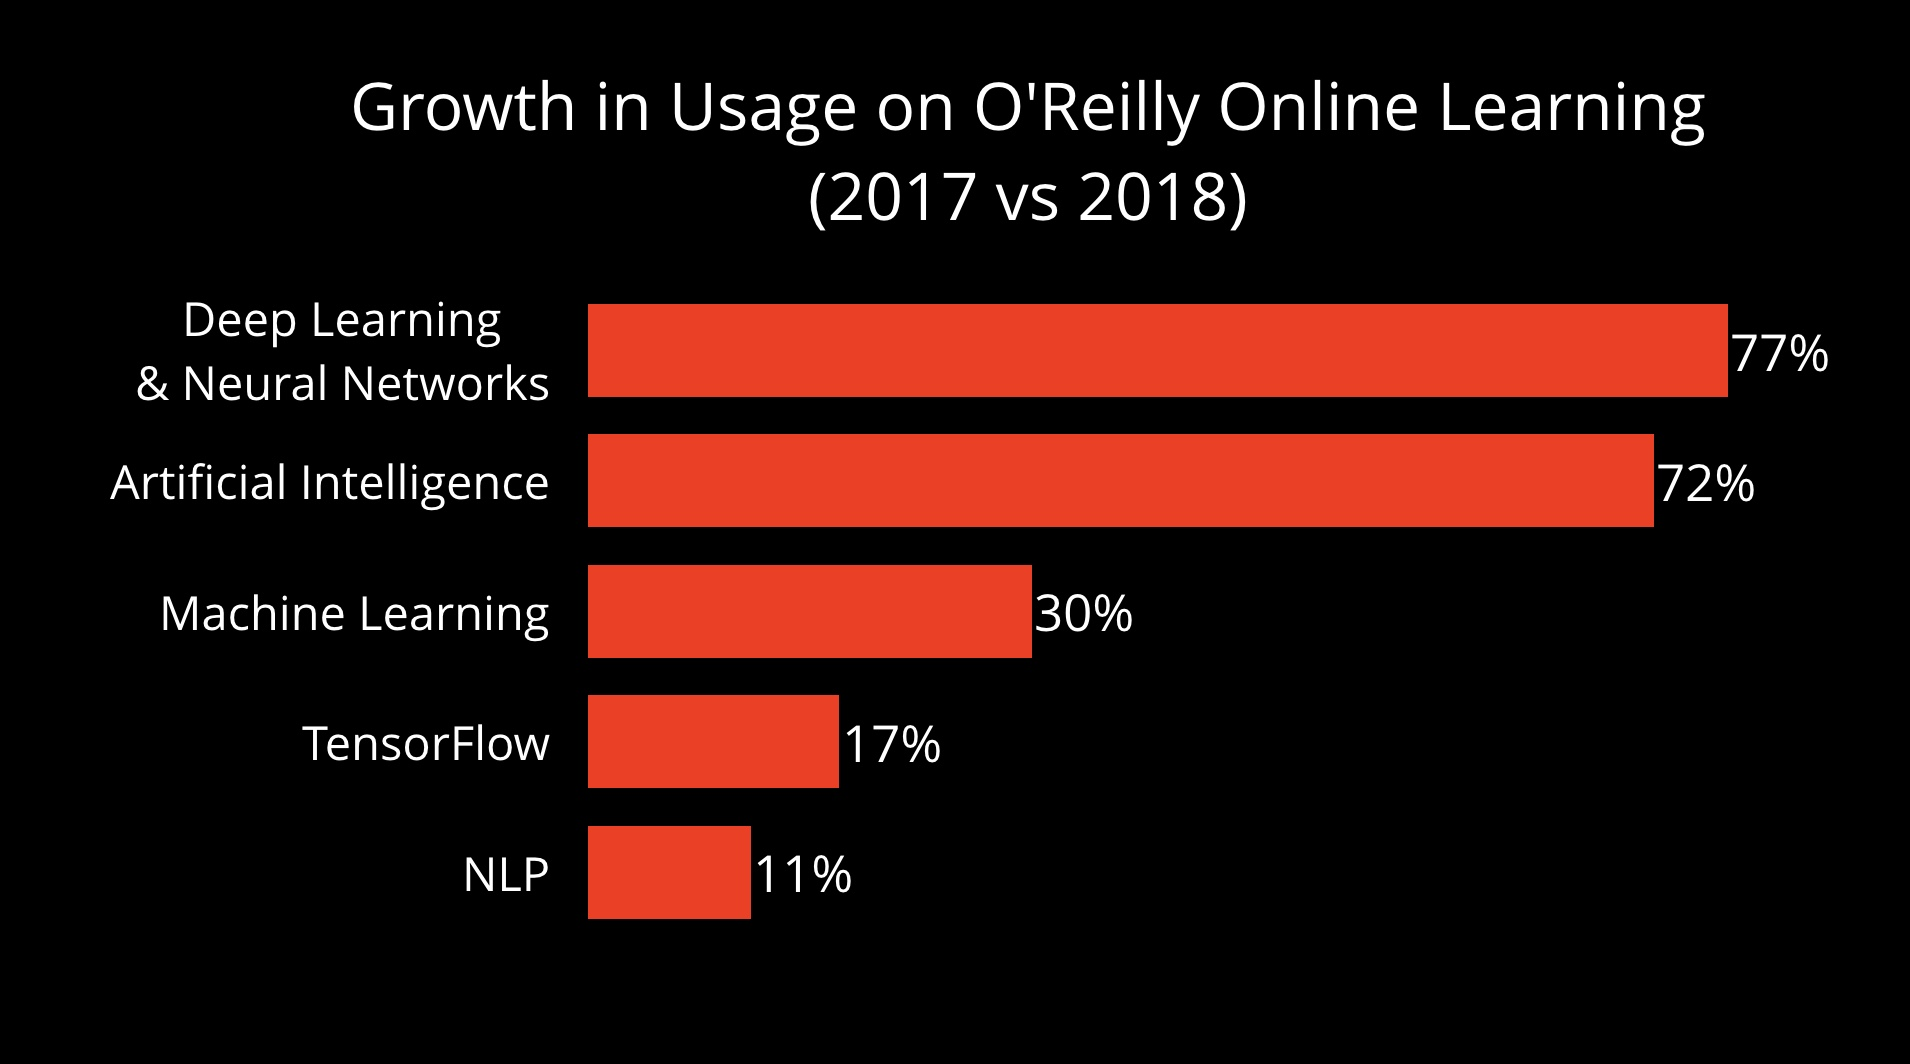 O'Reilly online learning platform deep learning content